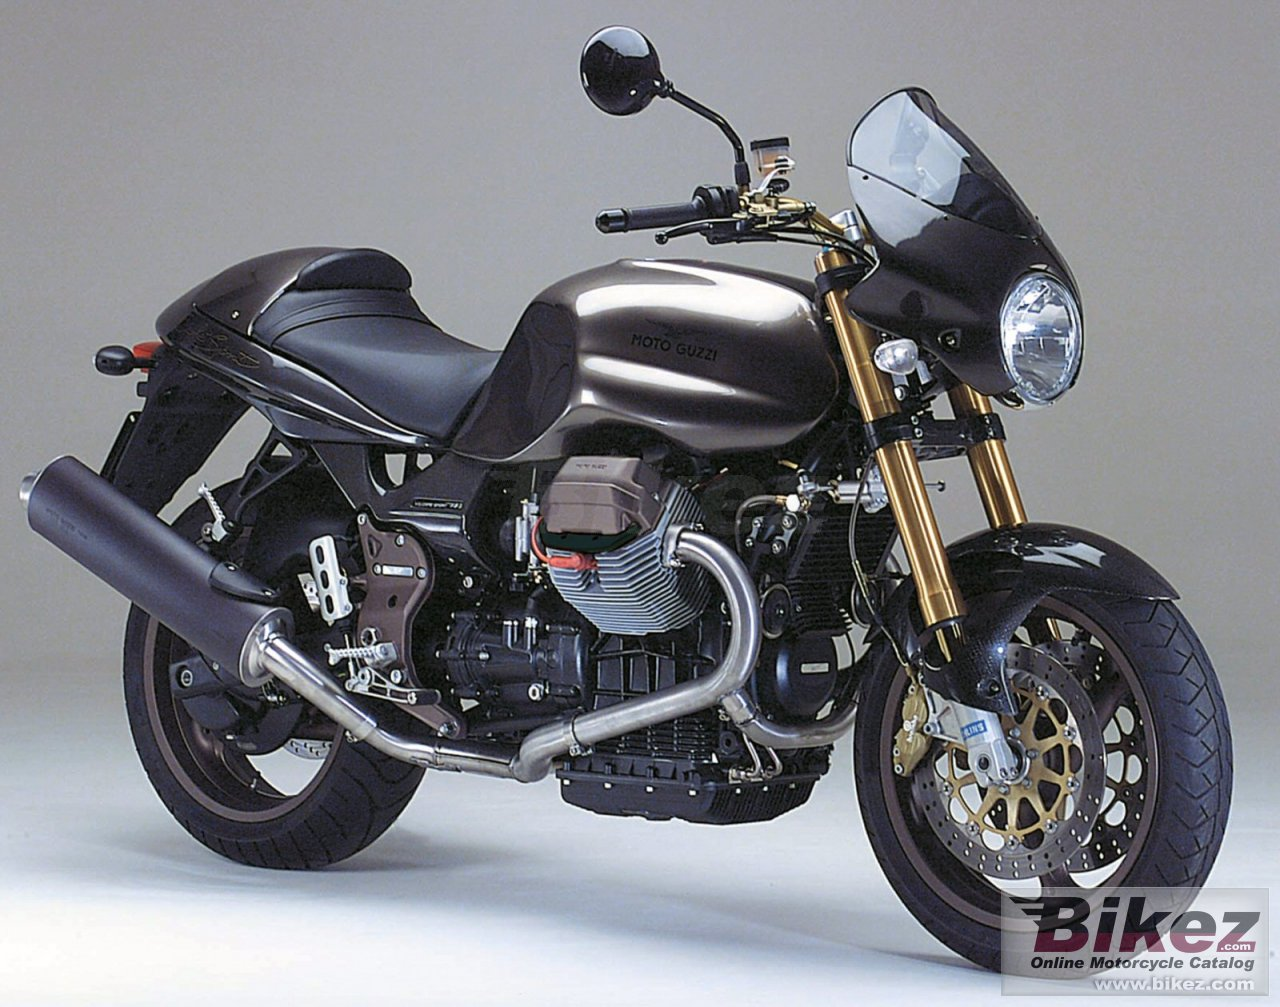 Big Moto Guzzi v 11 cafe sport picture and wallpaper from Bikez.com